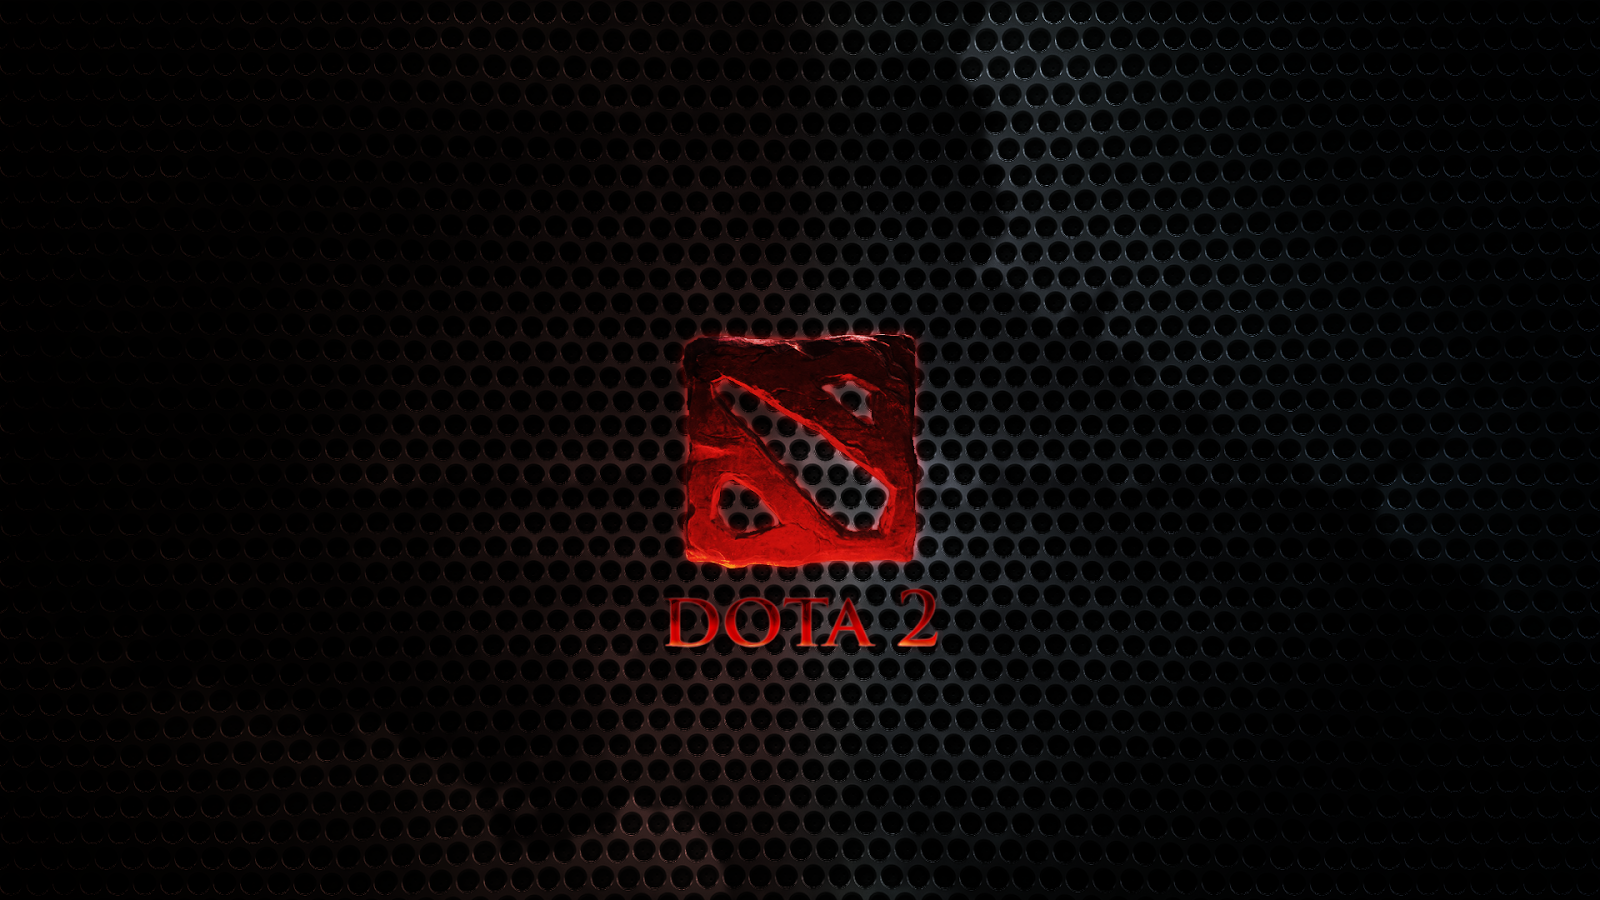 Dota 2 Wallpape... Dota 2 Logo Wallpaper Hd